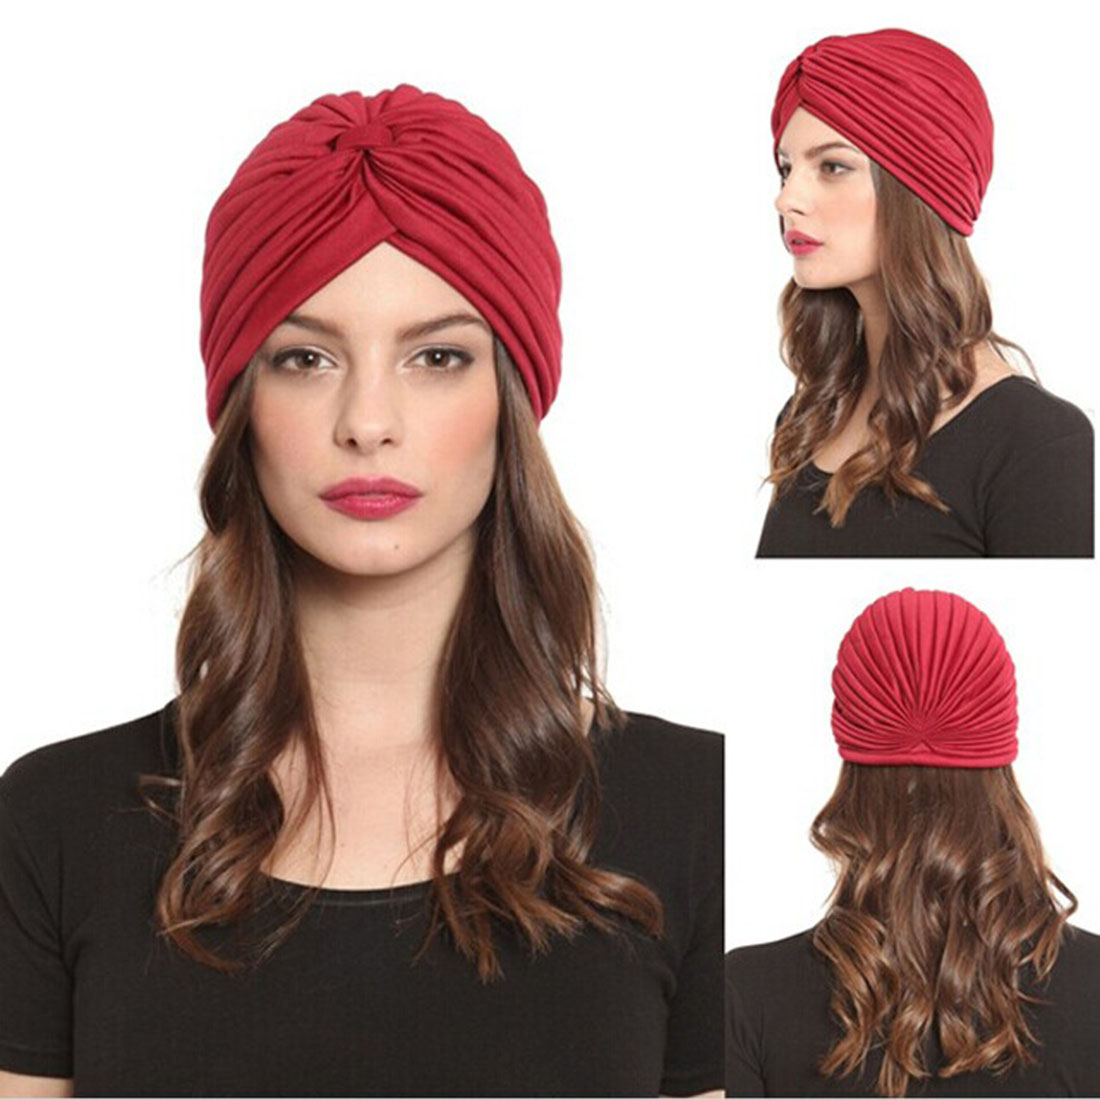 e2f4f4d3222 Women Hats Men Stretchy Turban Head Wrap Band Pleated Indian Women India Caps  Hat Ear Cap 23 Color Casual Lady New 2018 Hats-in Skullies   Beanies from  ...